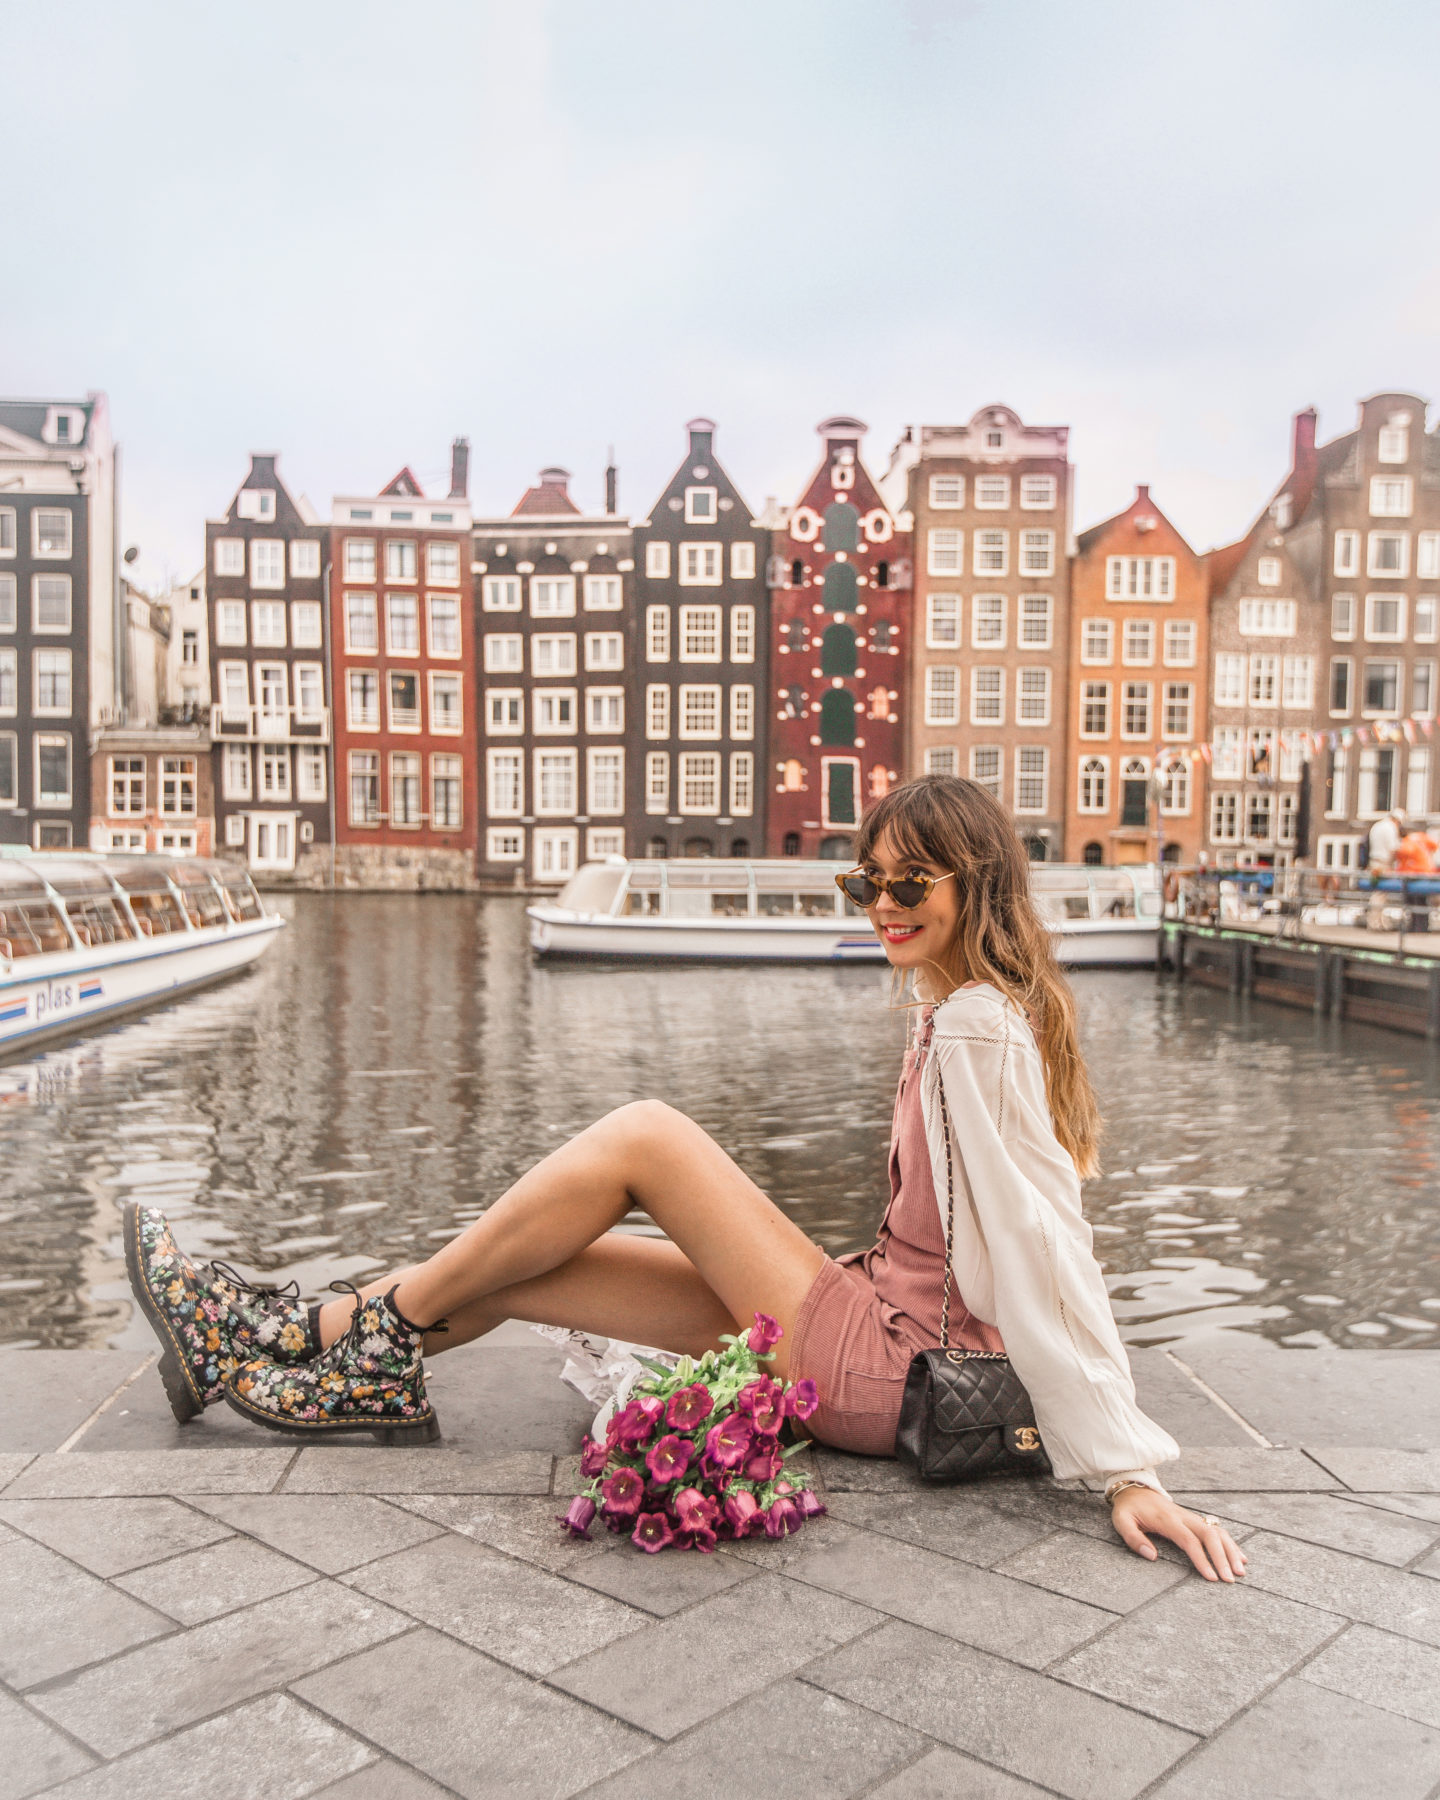 The best photo spot in Amsterdam